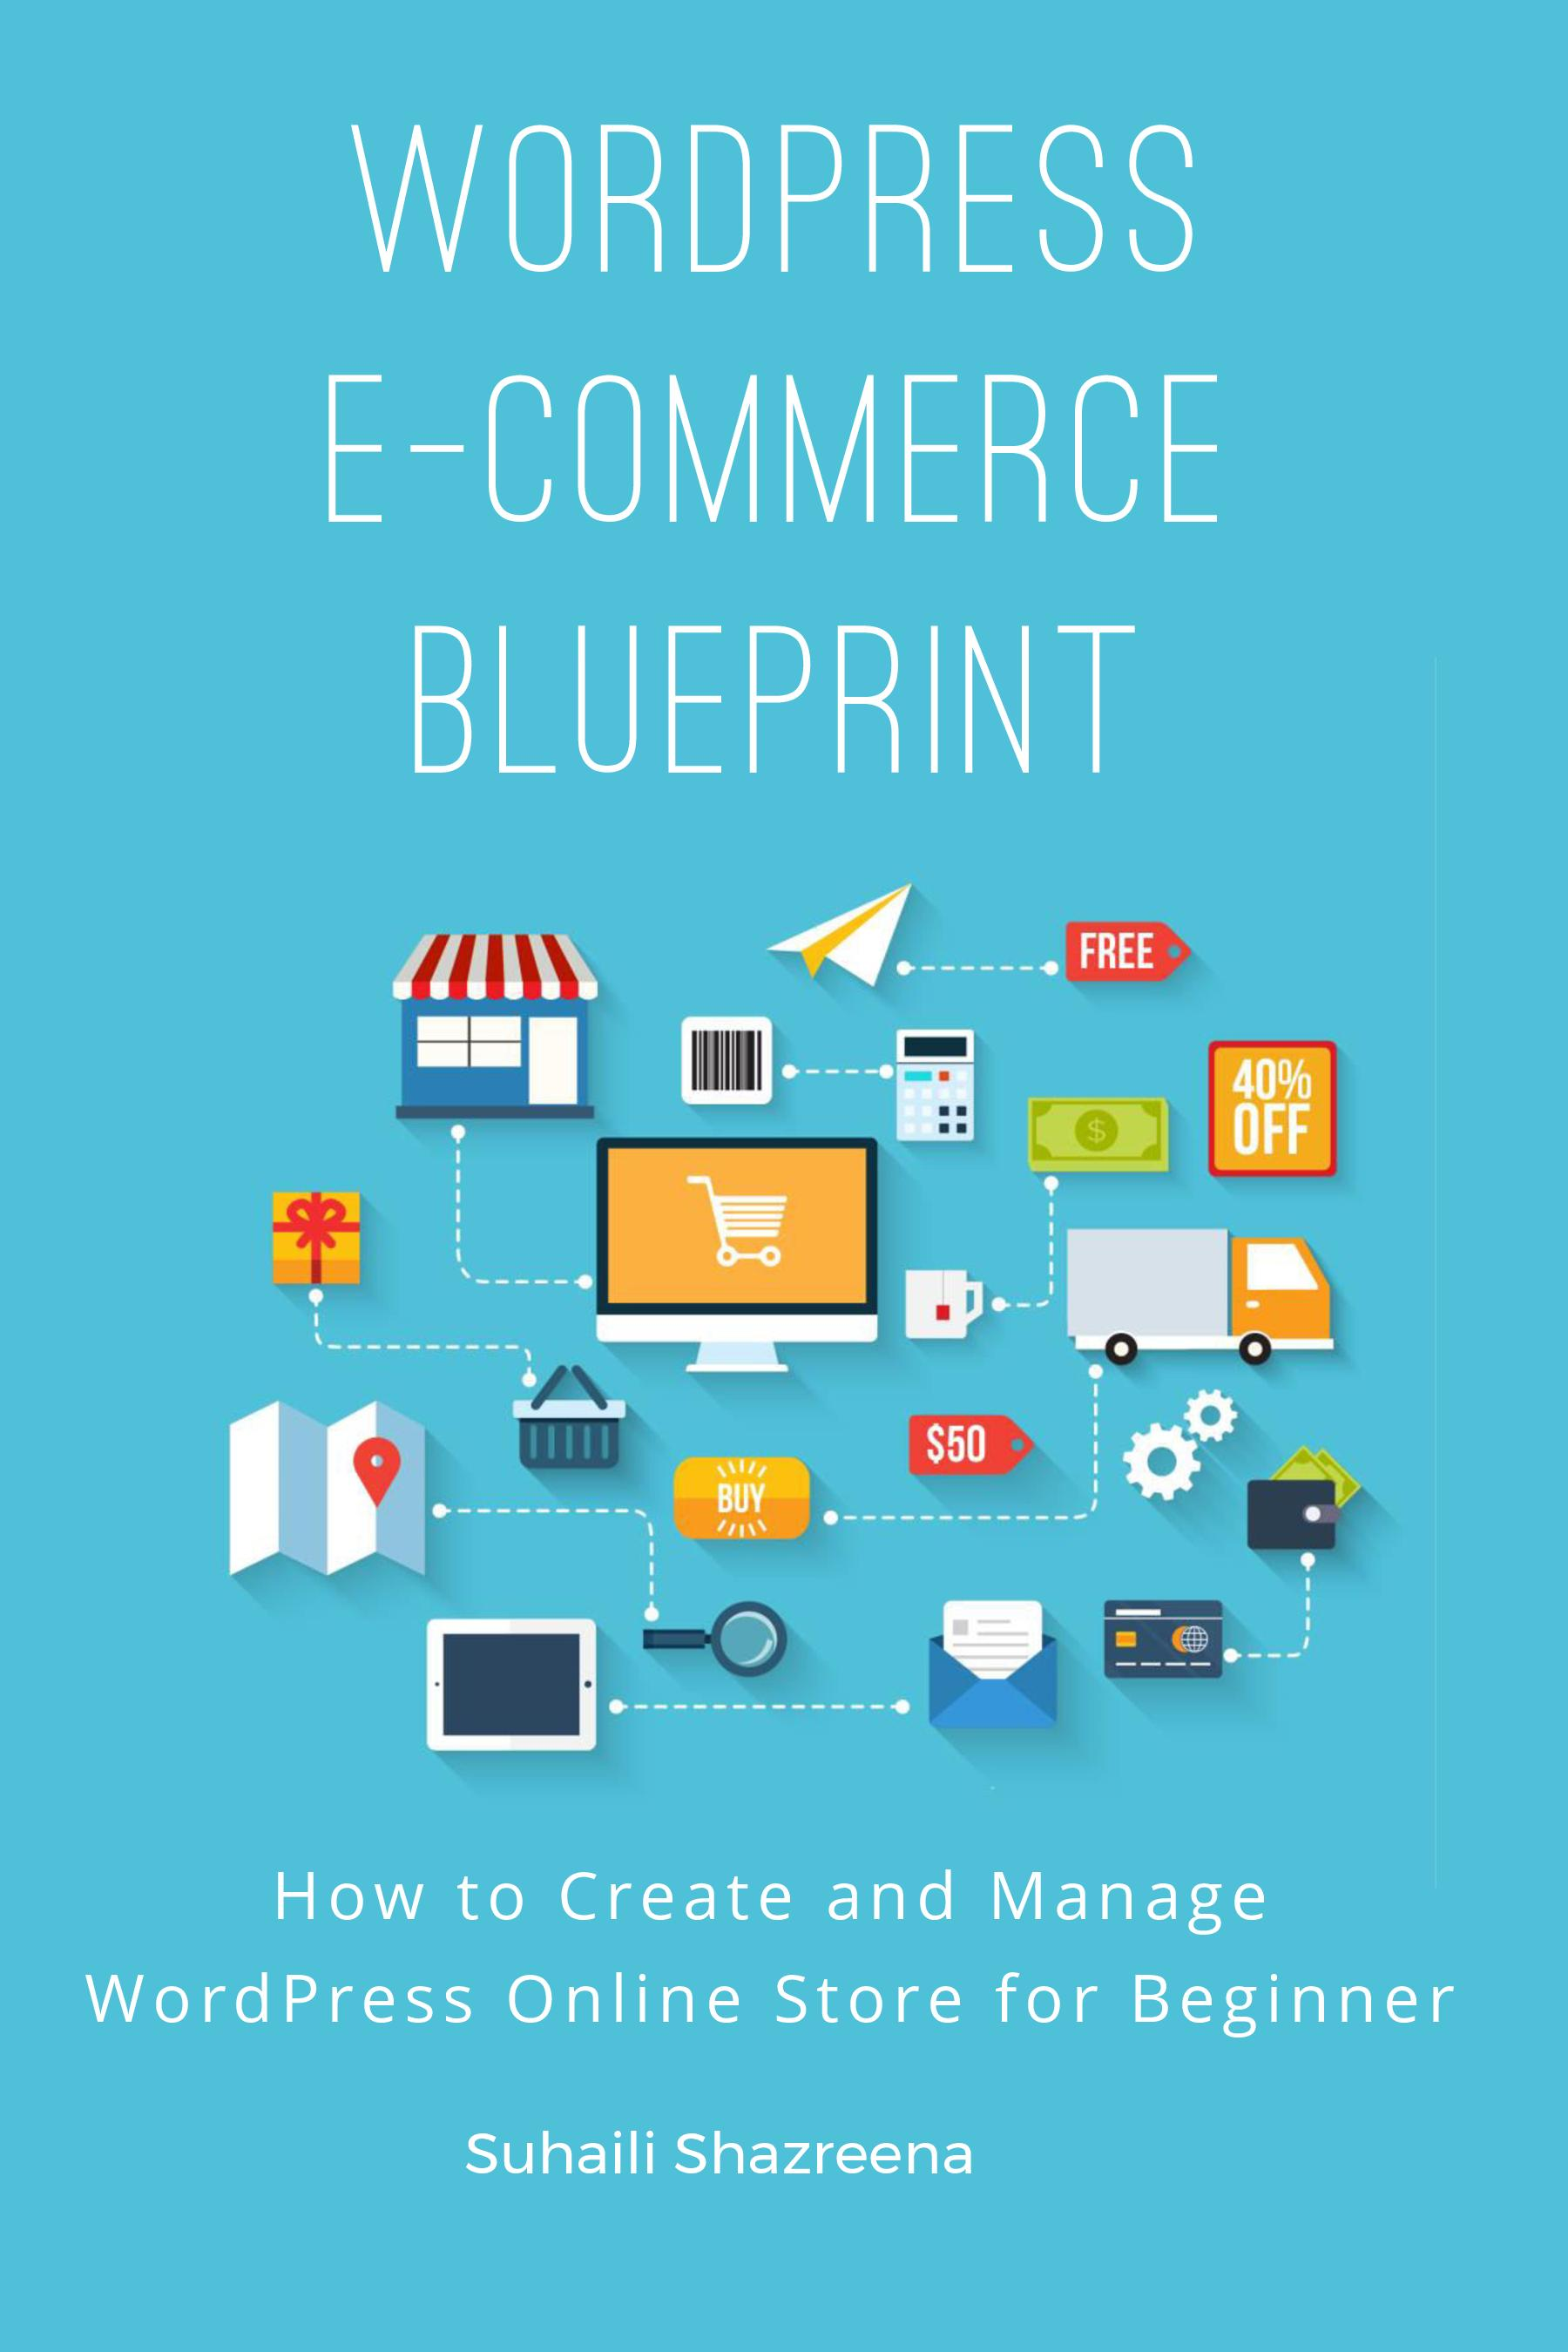 WordPress Ecommerce Blueprint